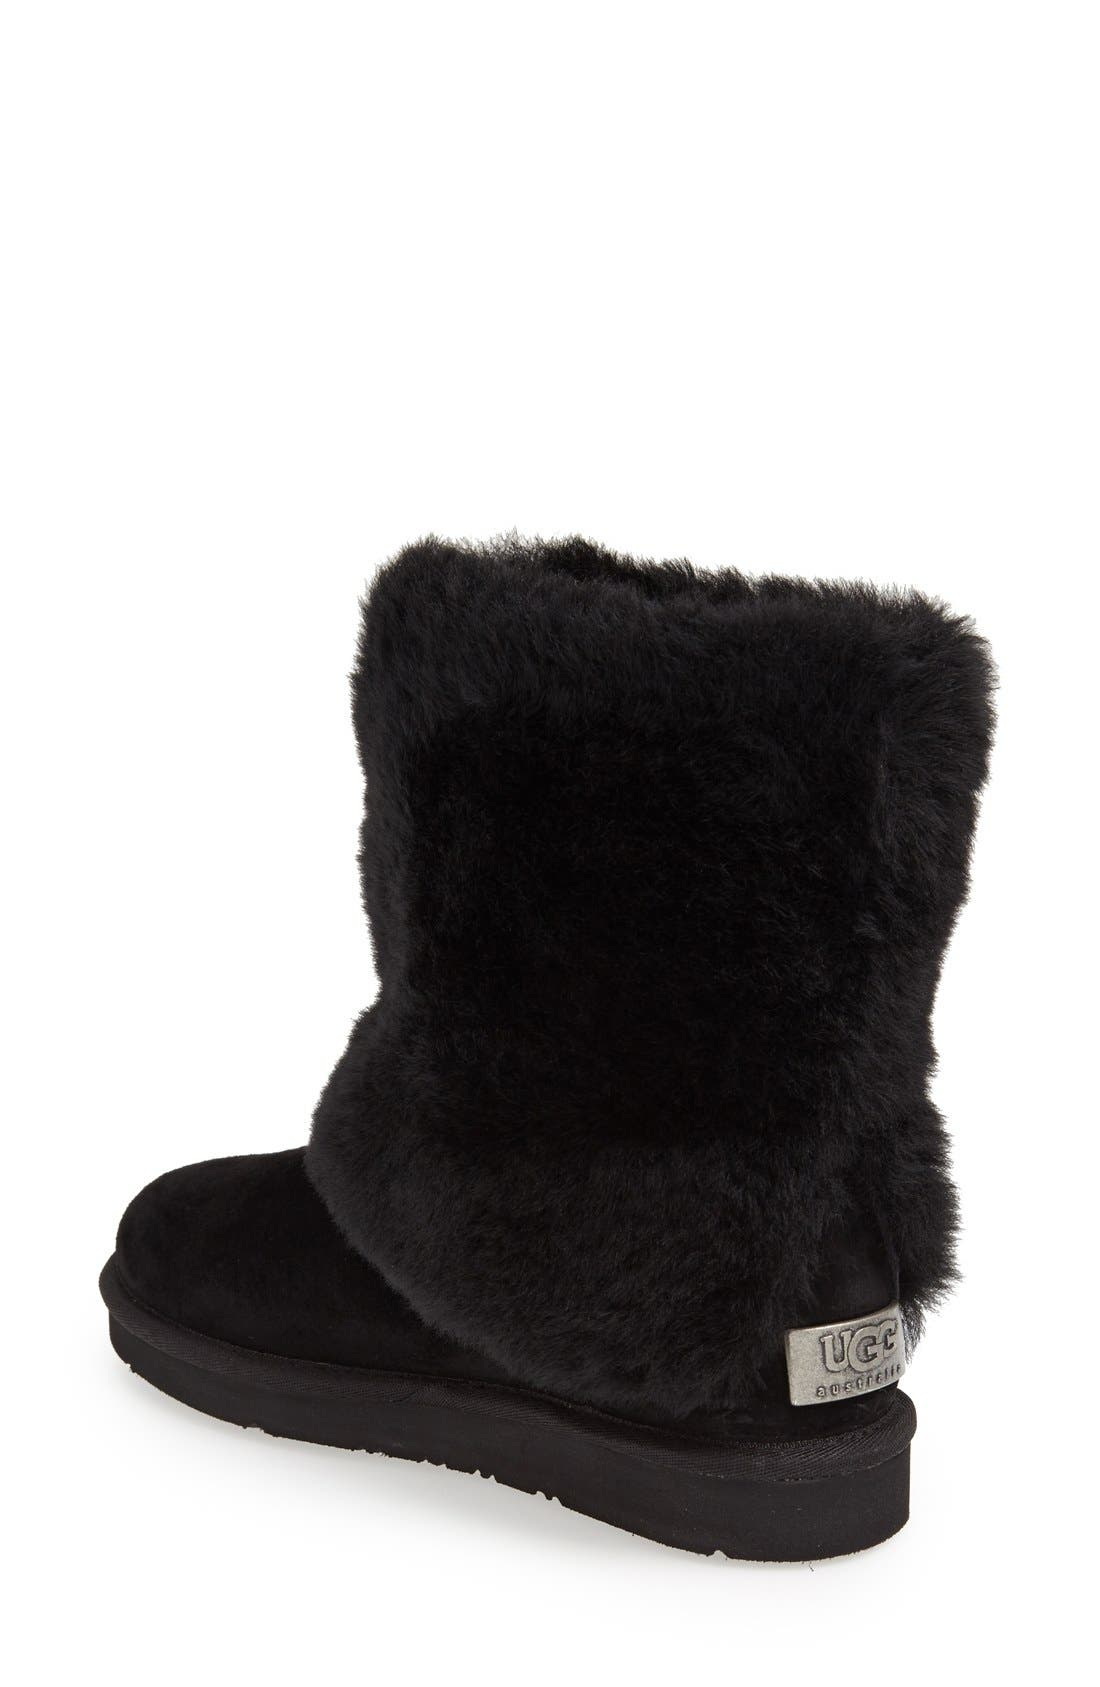 Alternate Image 2  - UGG® 'Patten' Water Resistant Silkee™ Suede Shearling Cuff Boot (Women)